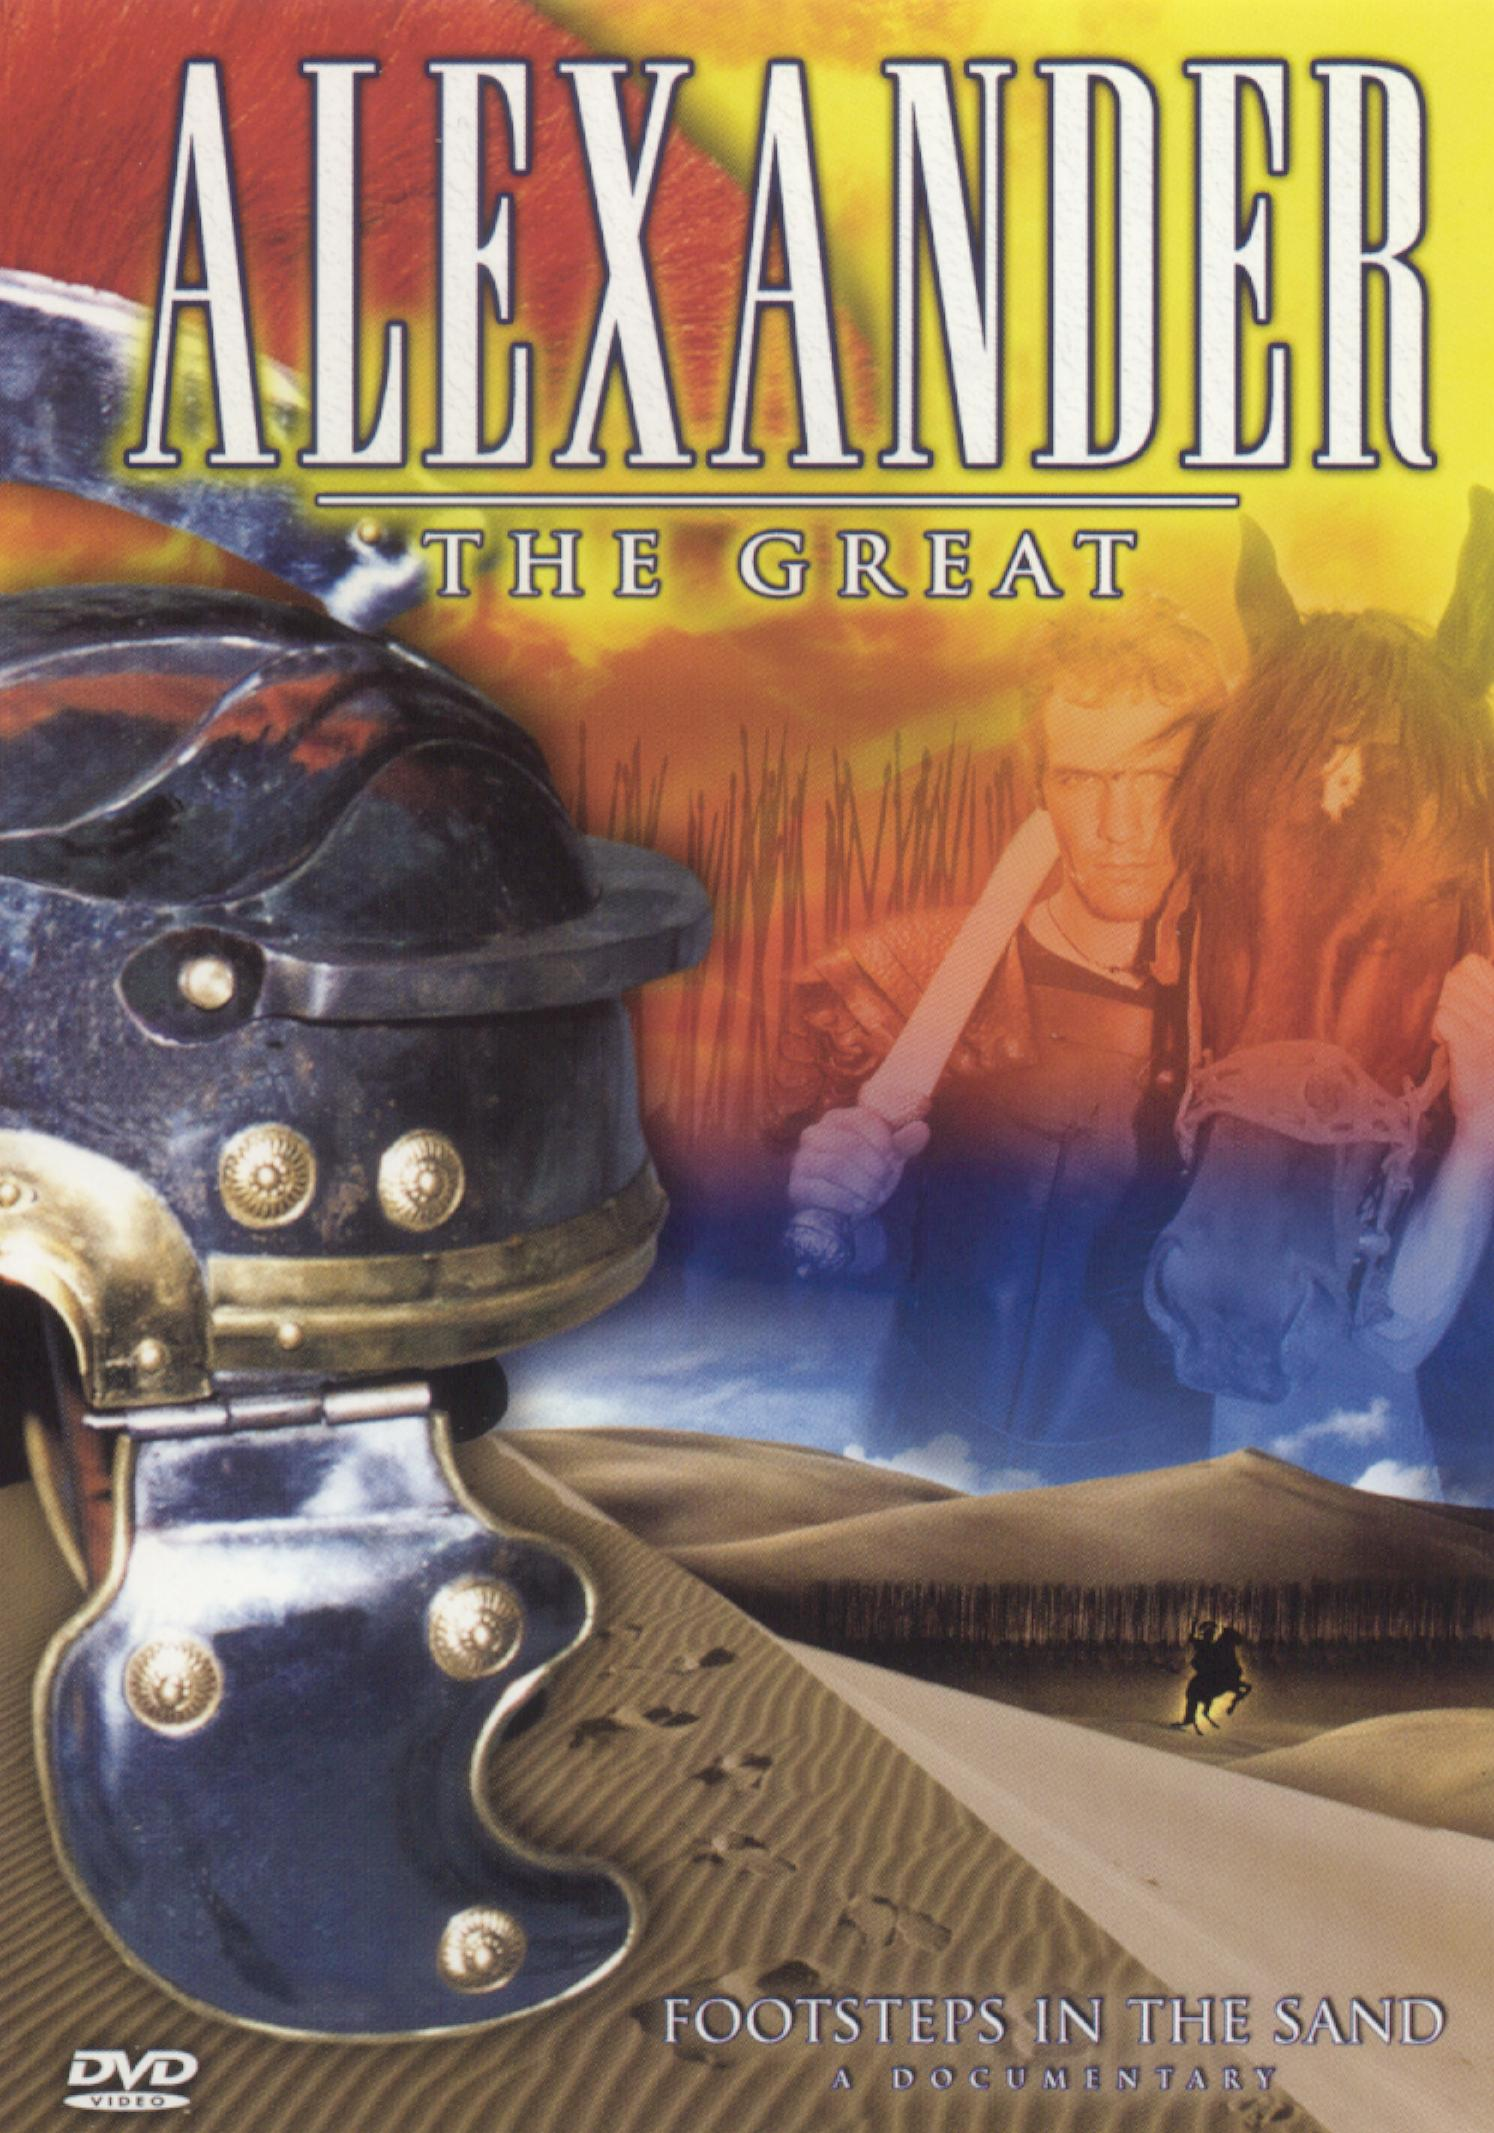 an overview of the life of alexander the great While studying alexander the great's leadership style over the past year and half,  i have come across  but first, an overview of alexander's resume:  plutarch  quoting alexander, parallel lives: the life of alexander, 19.